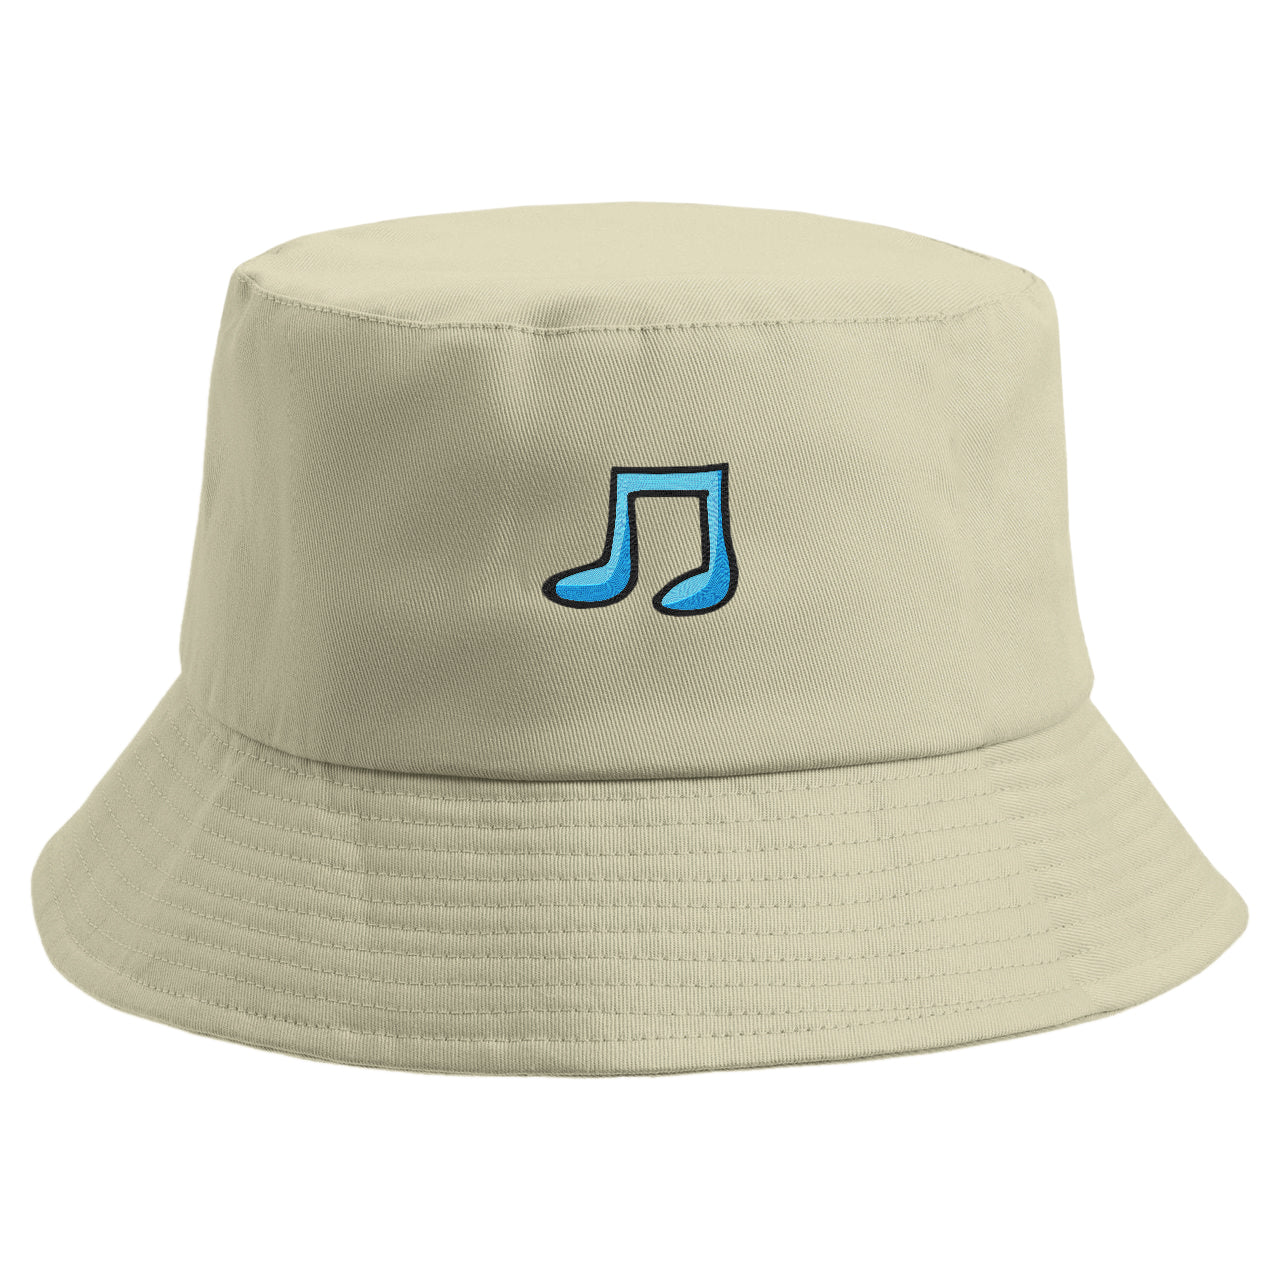 Embroidered Musical Note Bucket Hat